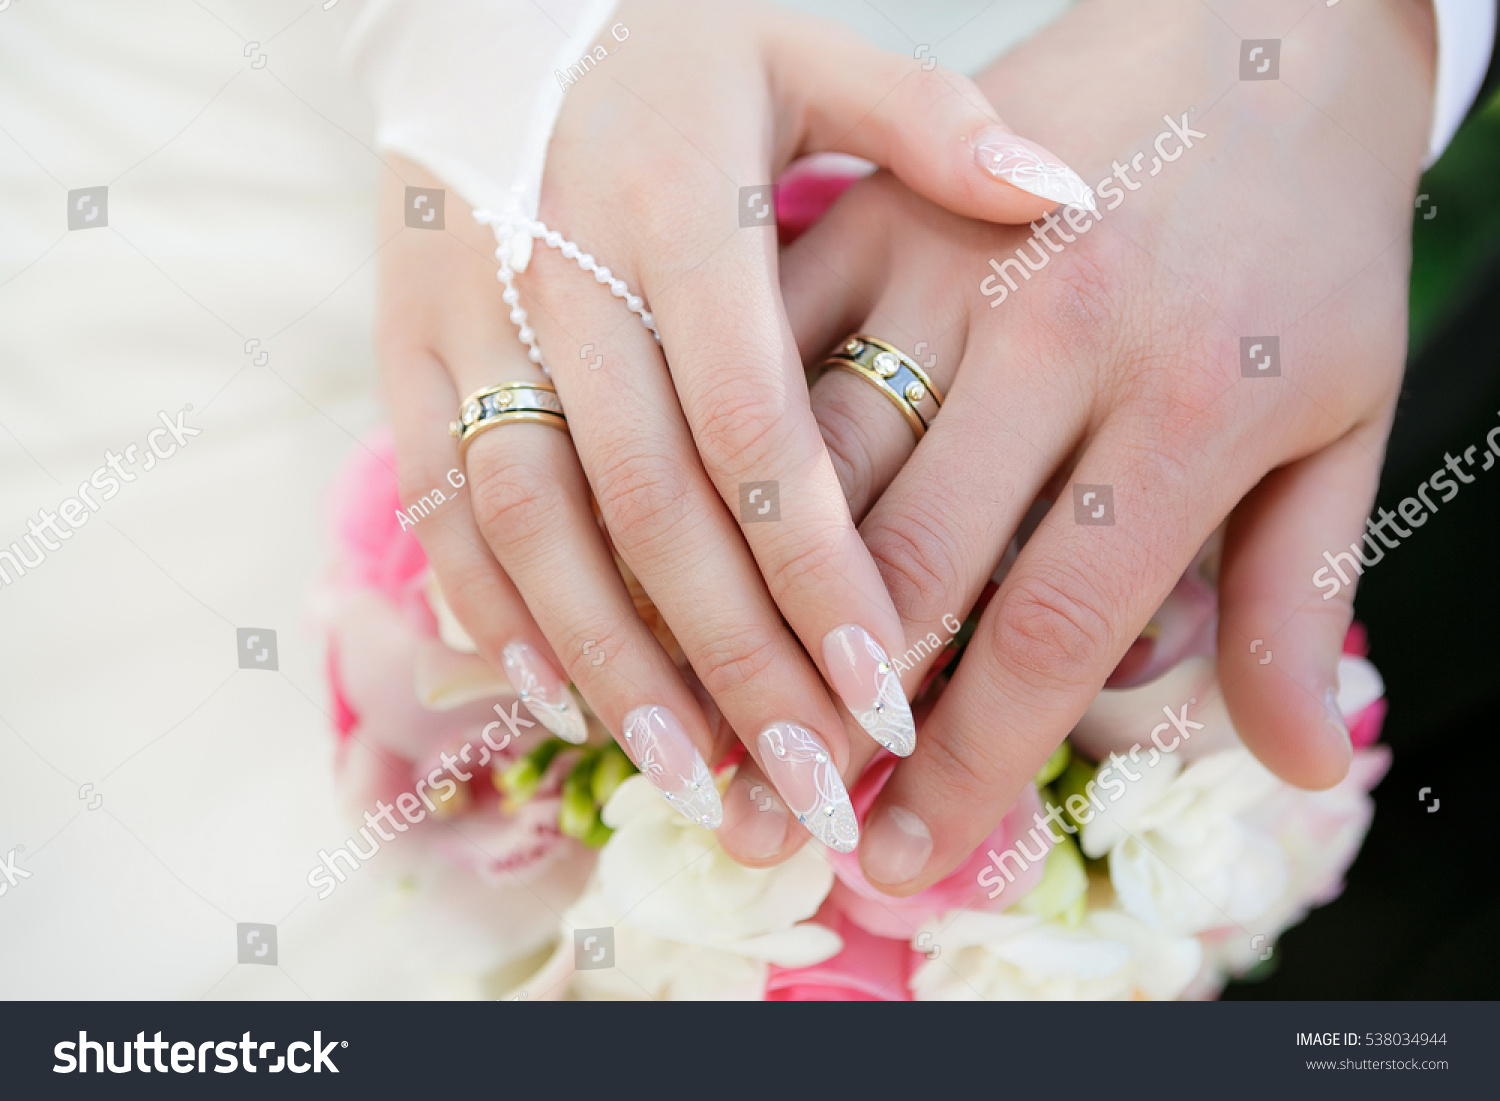 Hands Groom Bride Wedding Rings Wedding Stock Photo & Image (Royalty ...